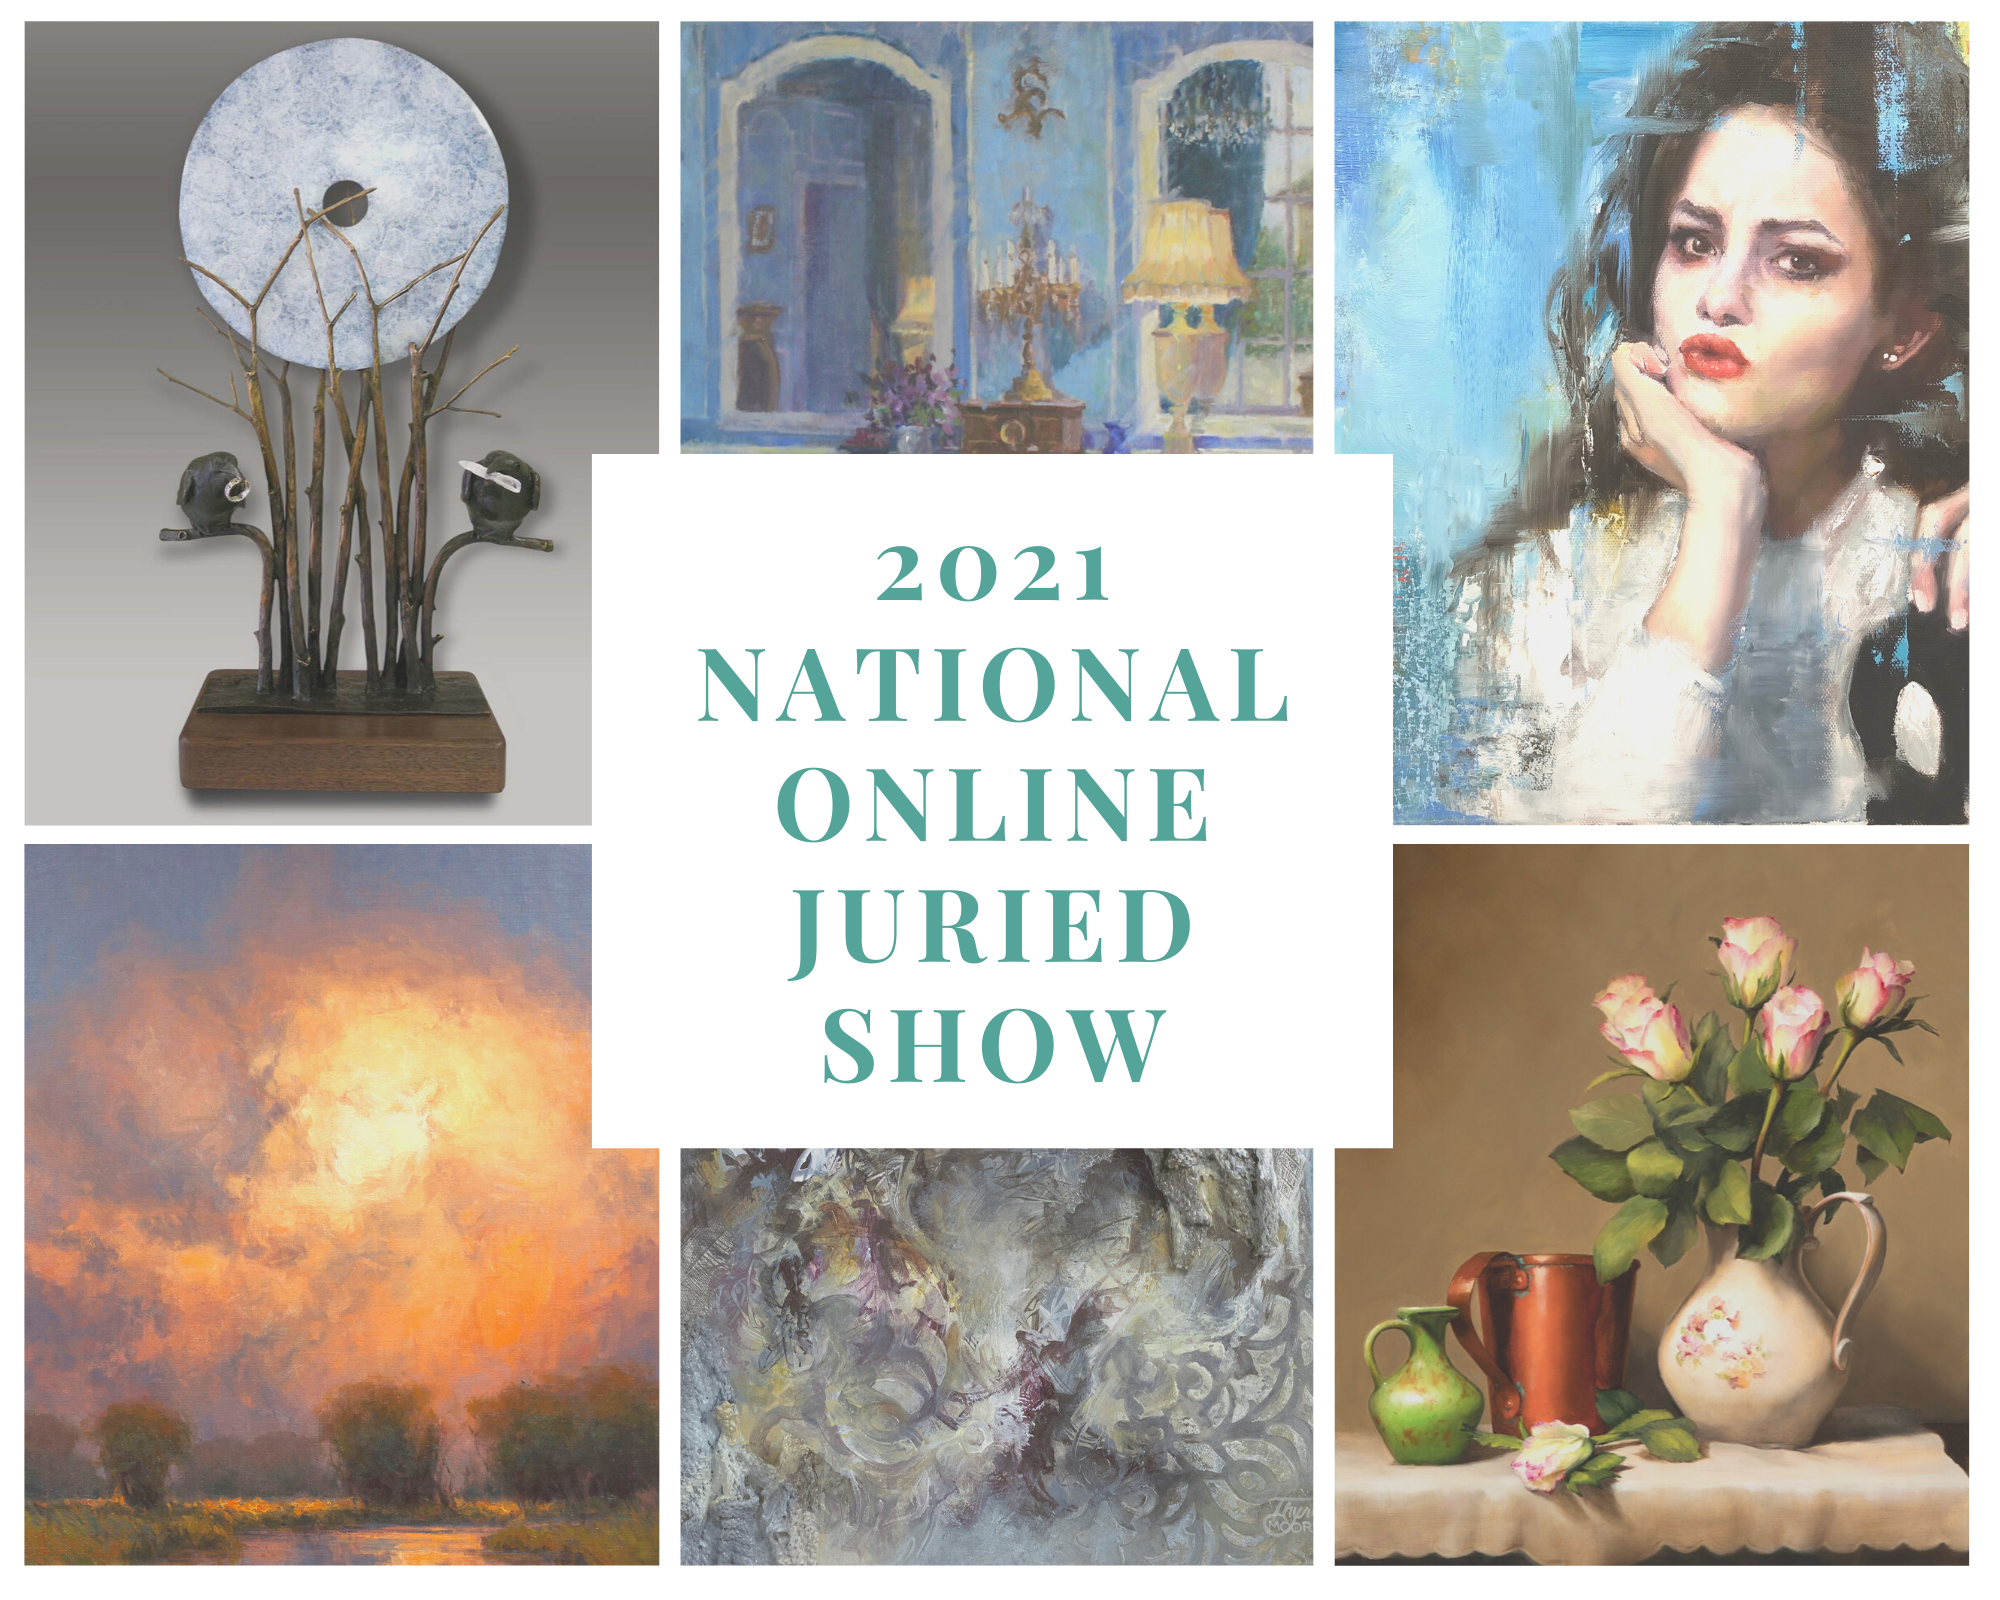 Applications Open November 15 for National Online Juried Show